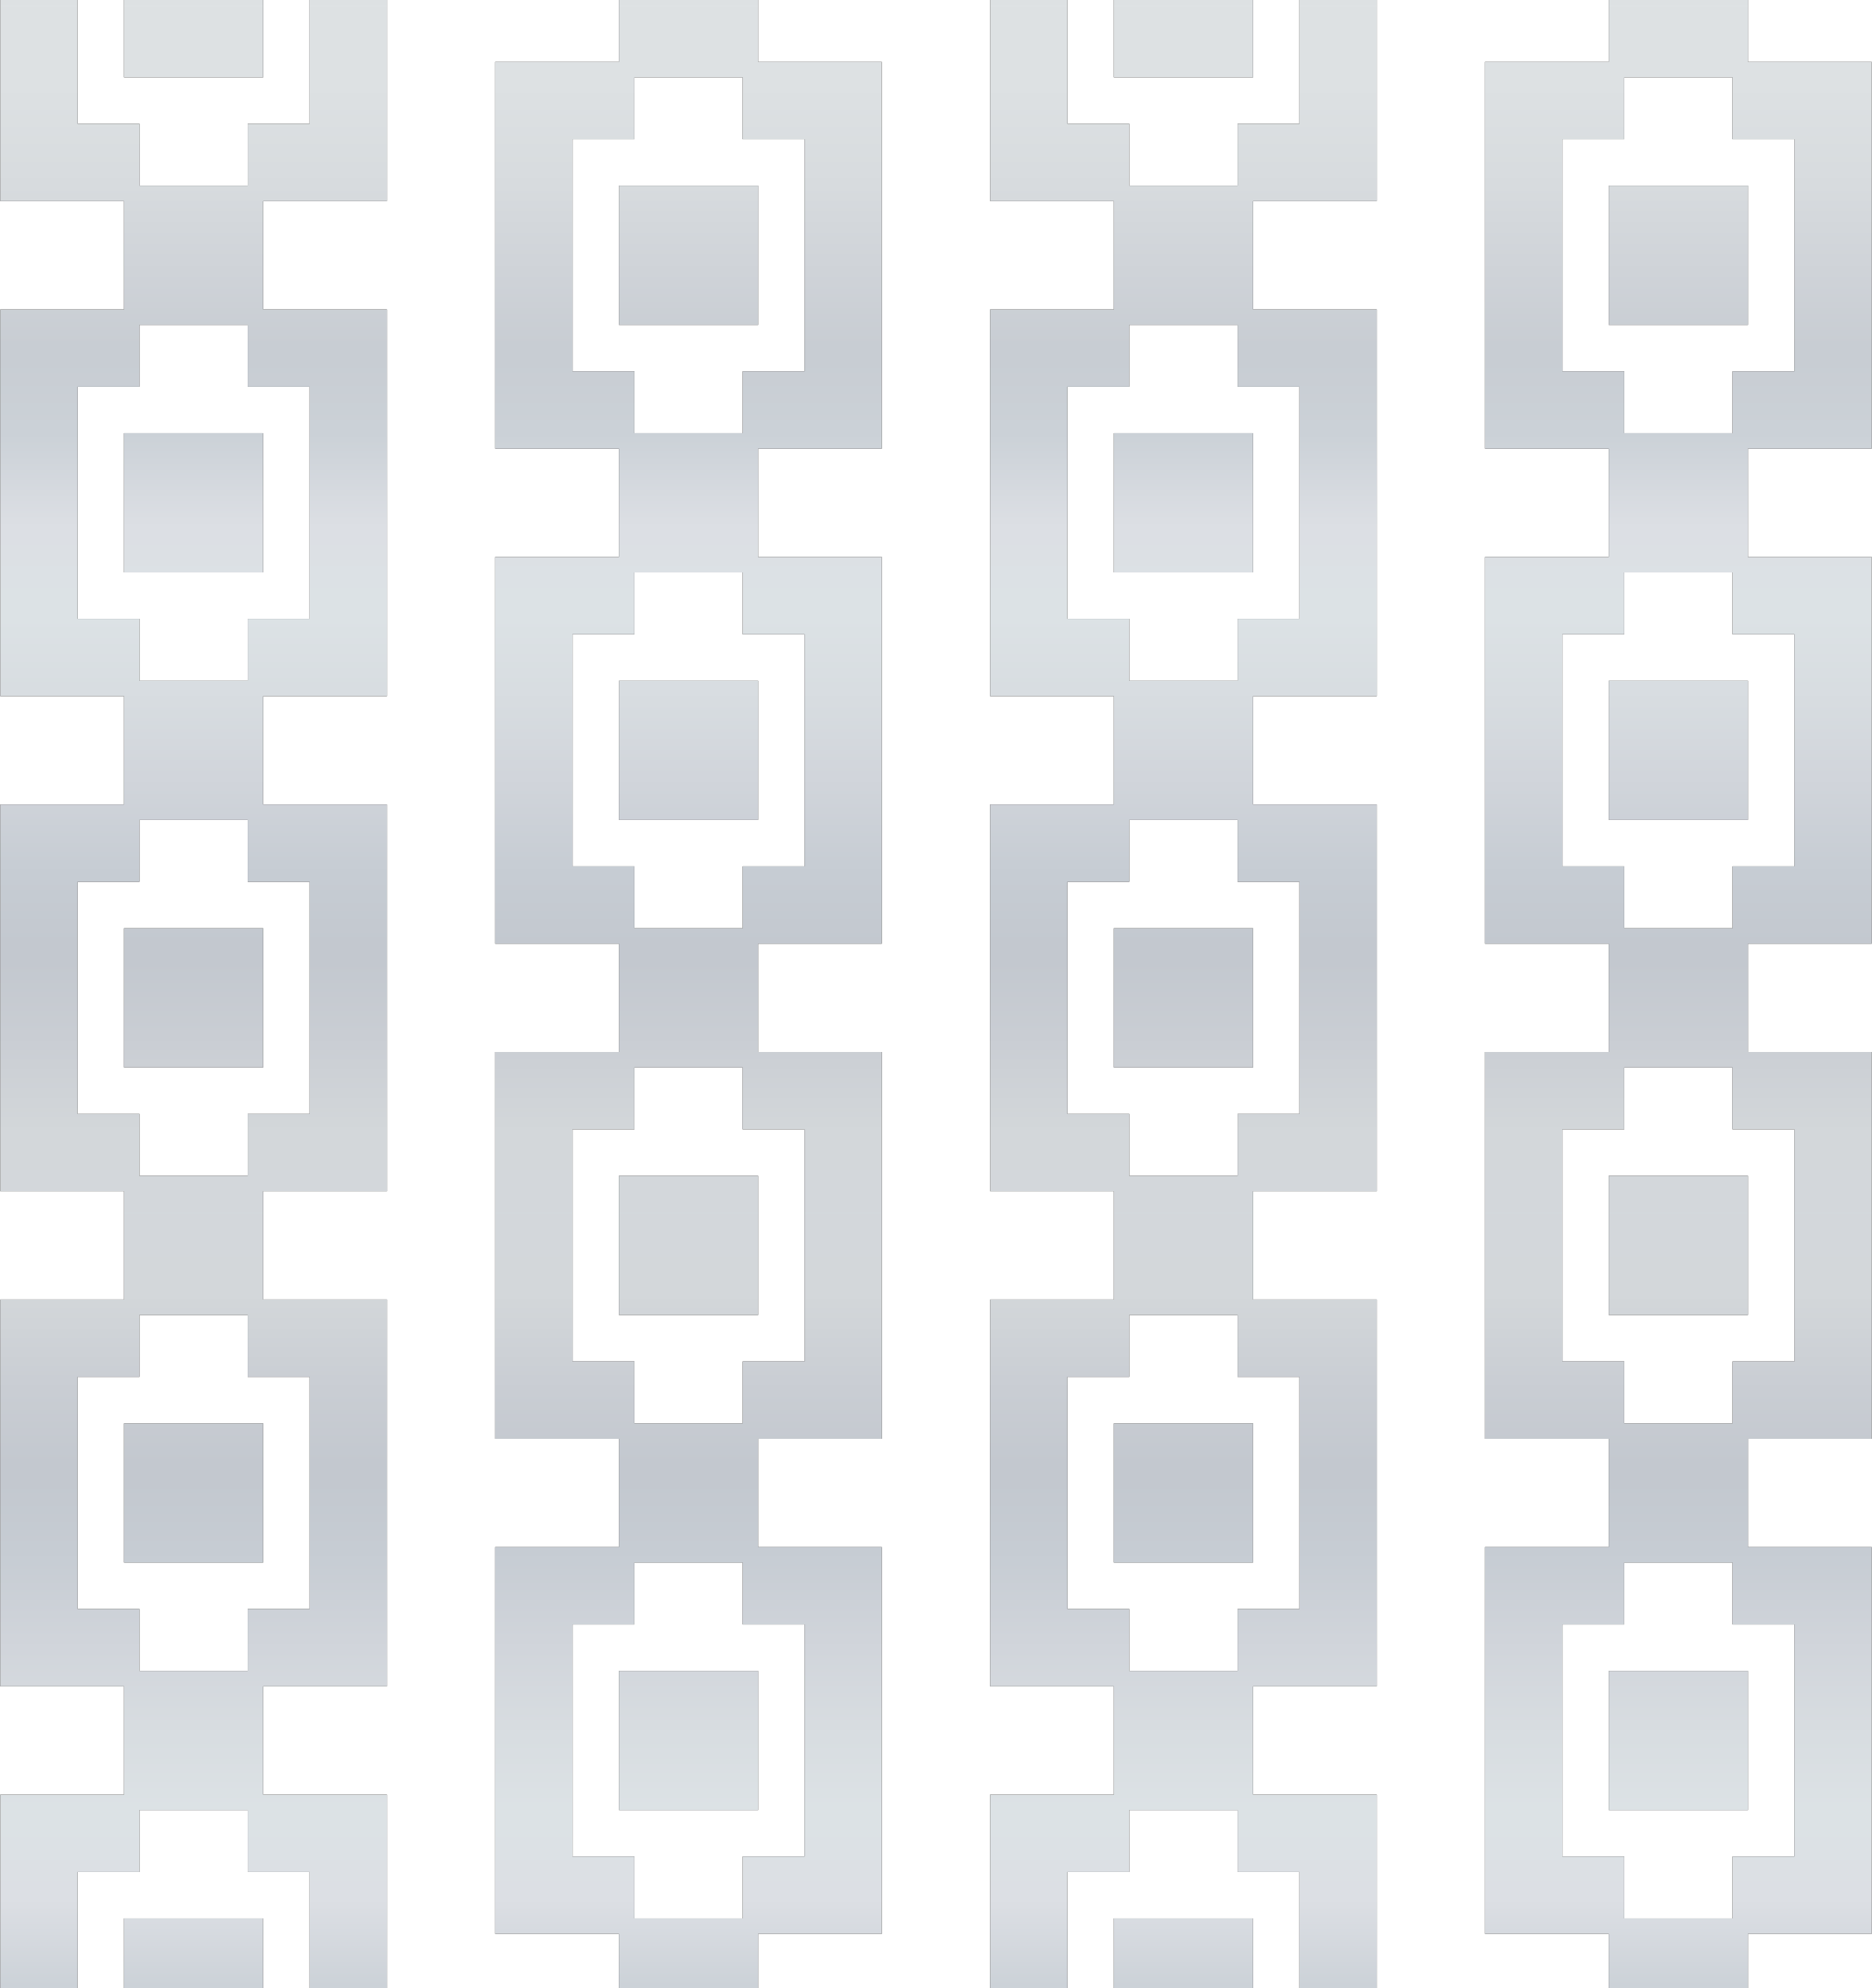 Silver big image png. Square clipart square pattern